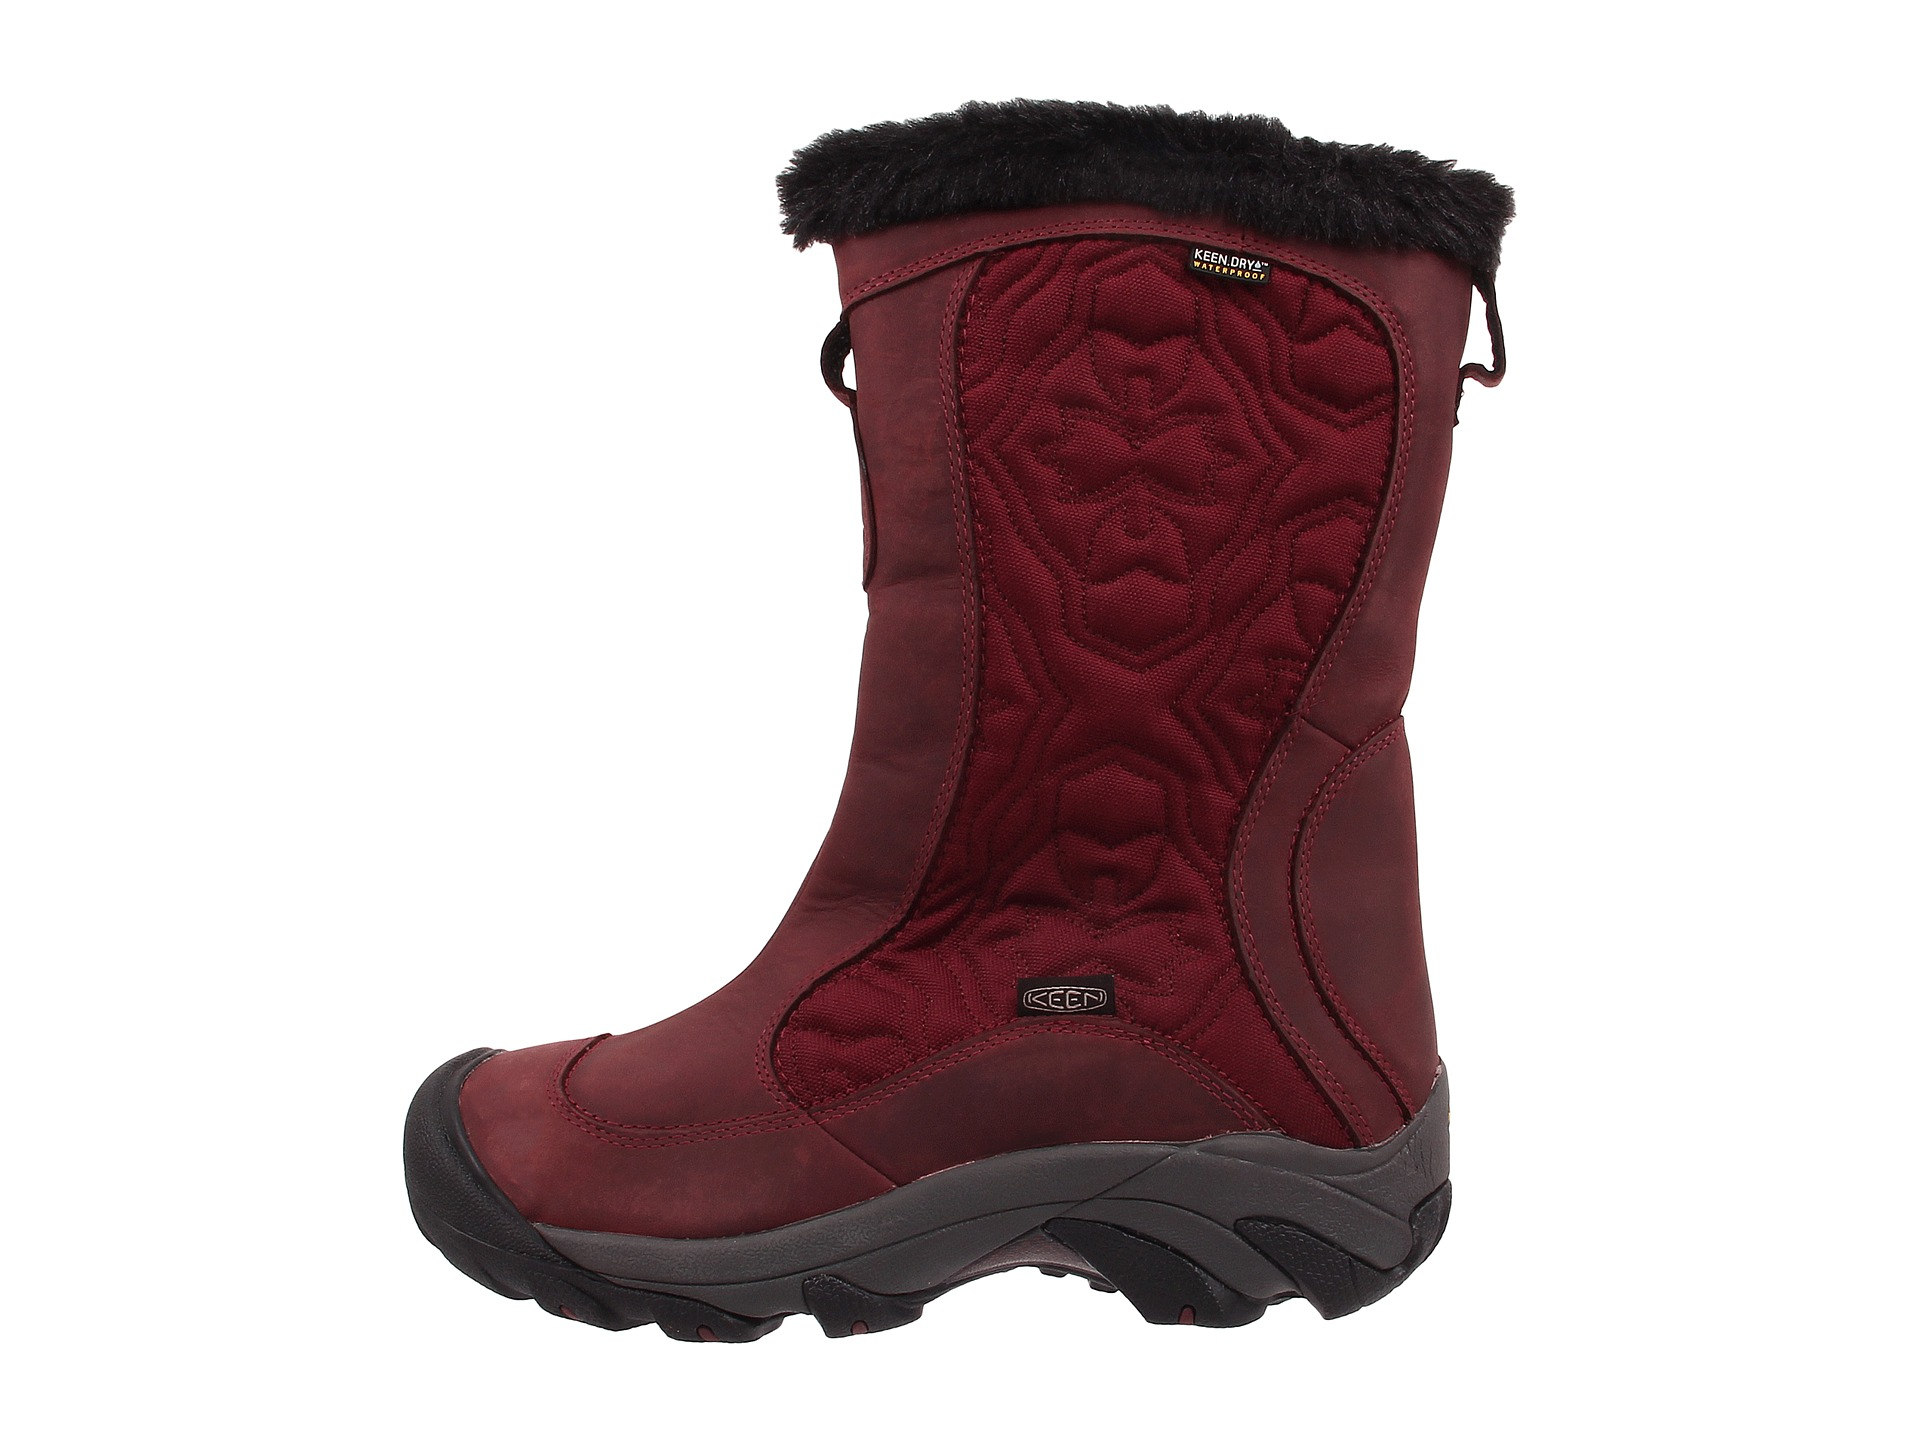 Keen Winter Boots Men Images Rustic Homemade Gifts For